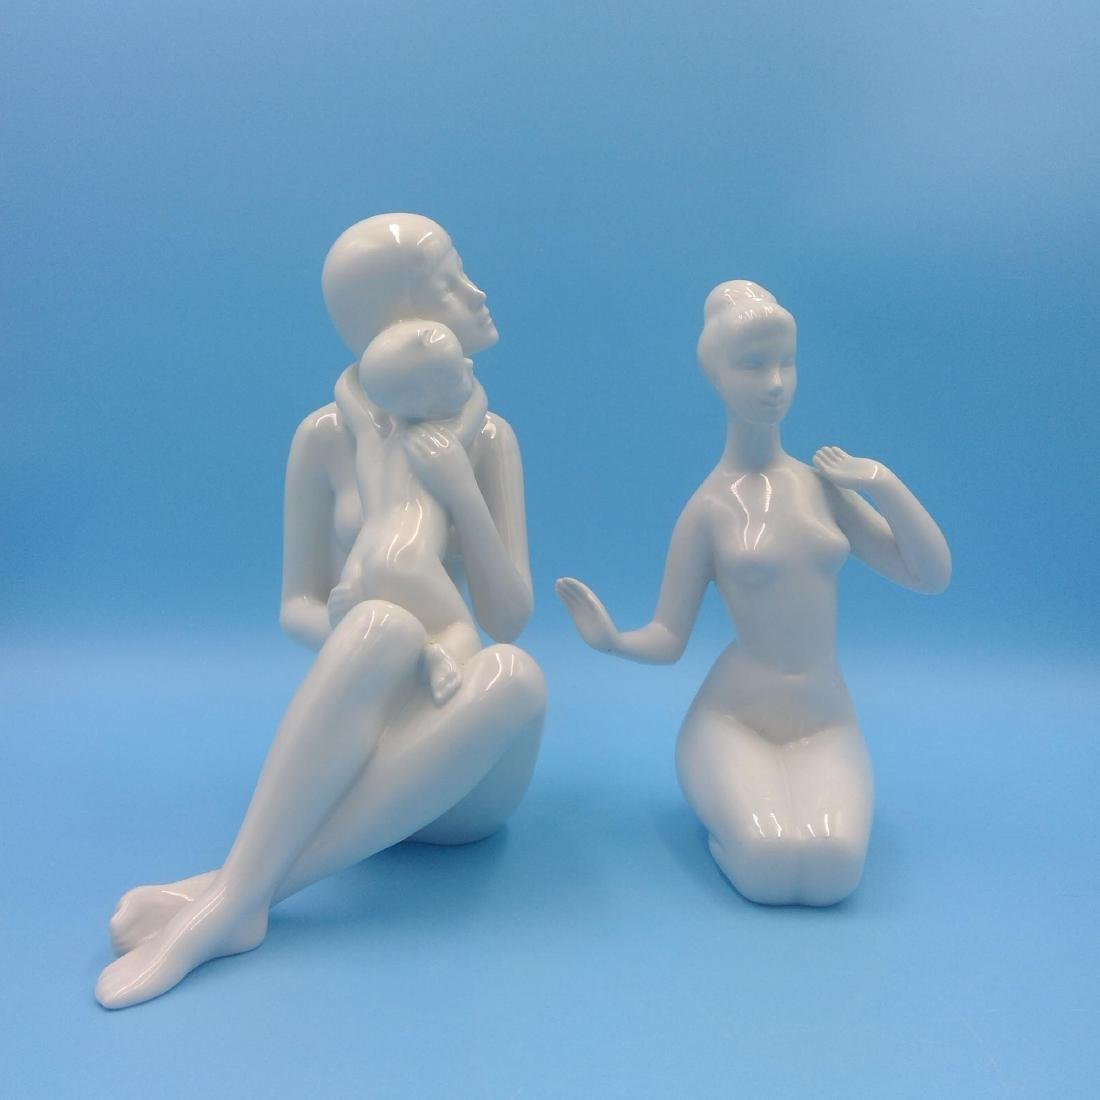 GROUP OF 2 ROYAL DUX BOHEMIAN NUDE FIGURINES